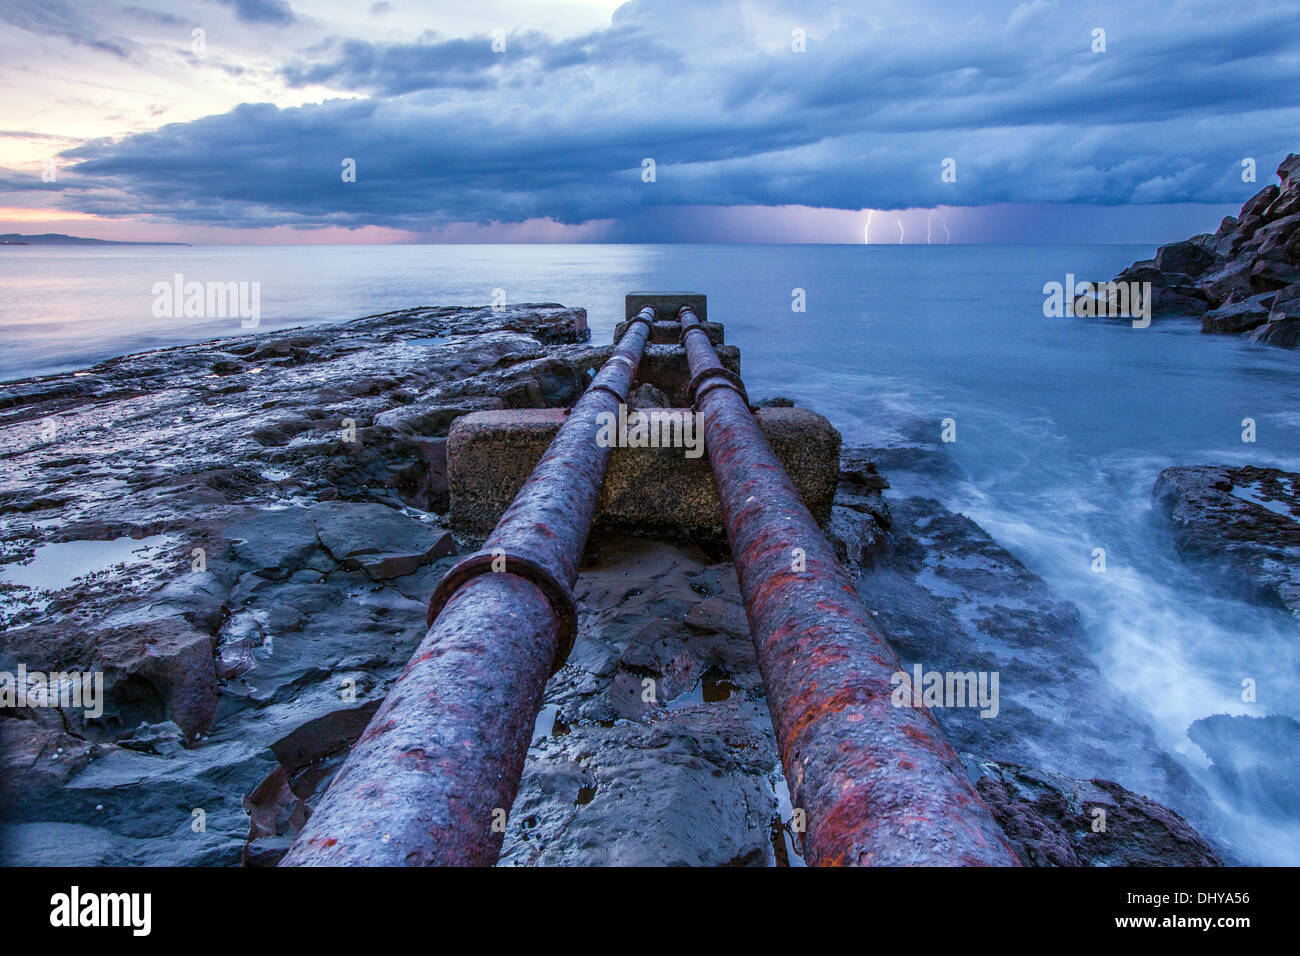 Pipes heading into the ocean with lightening in background - Stock Image